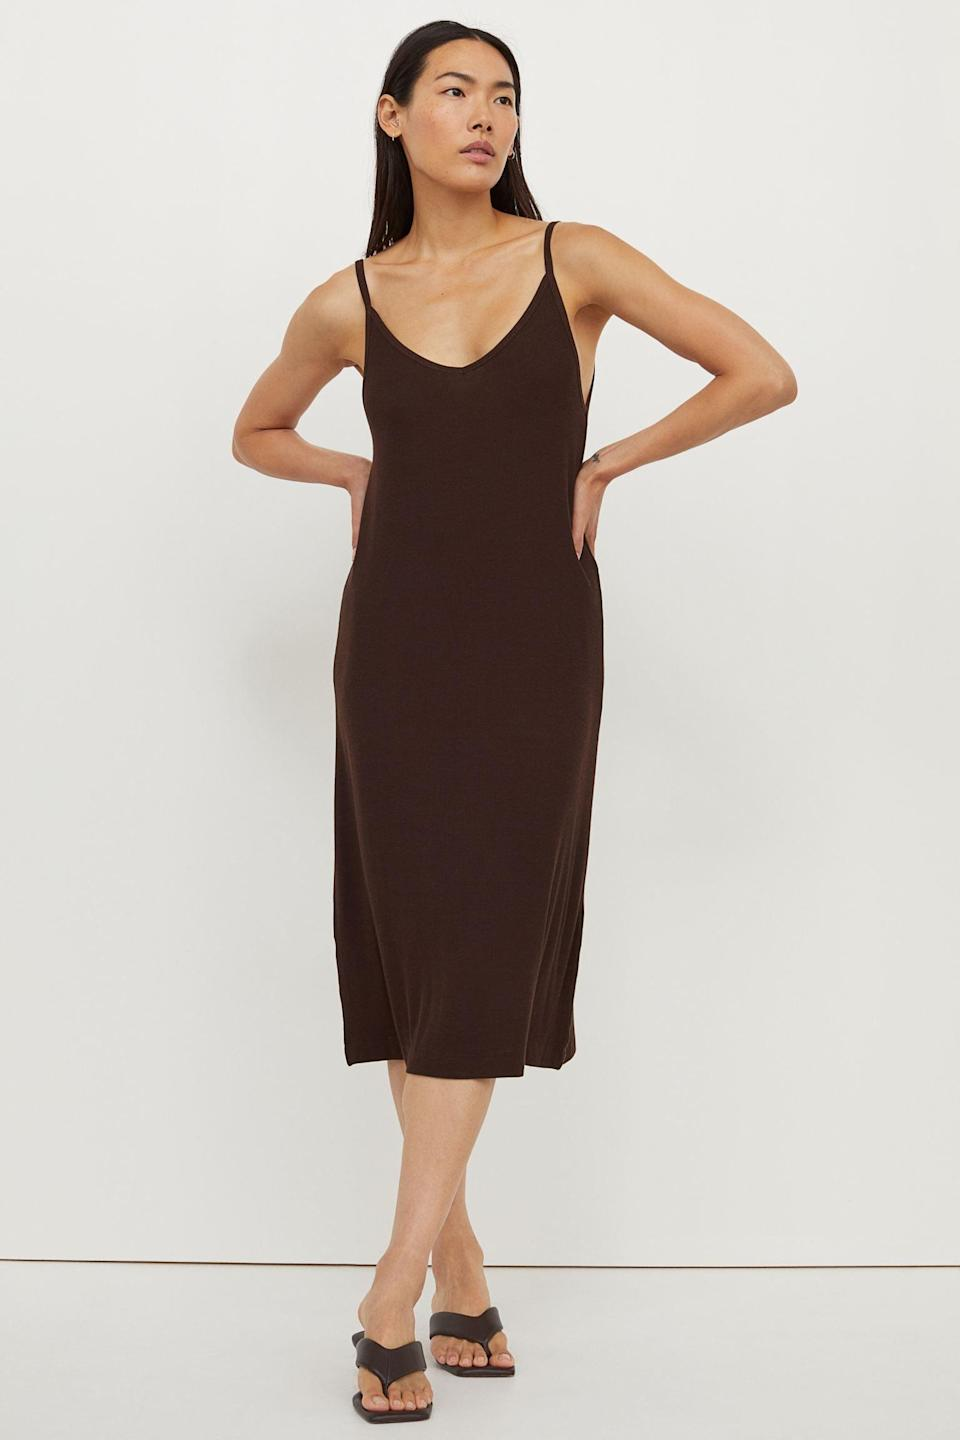 <p>You're now onto the second date, and you're wondering where to find a relaxed yet still elevated slip-style dress? This <span>Ribbed Jersey Dress</span> ($15, originally $18) is the answer.</p>